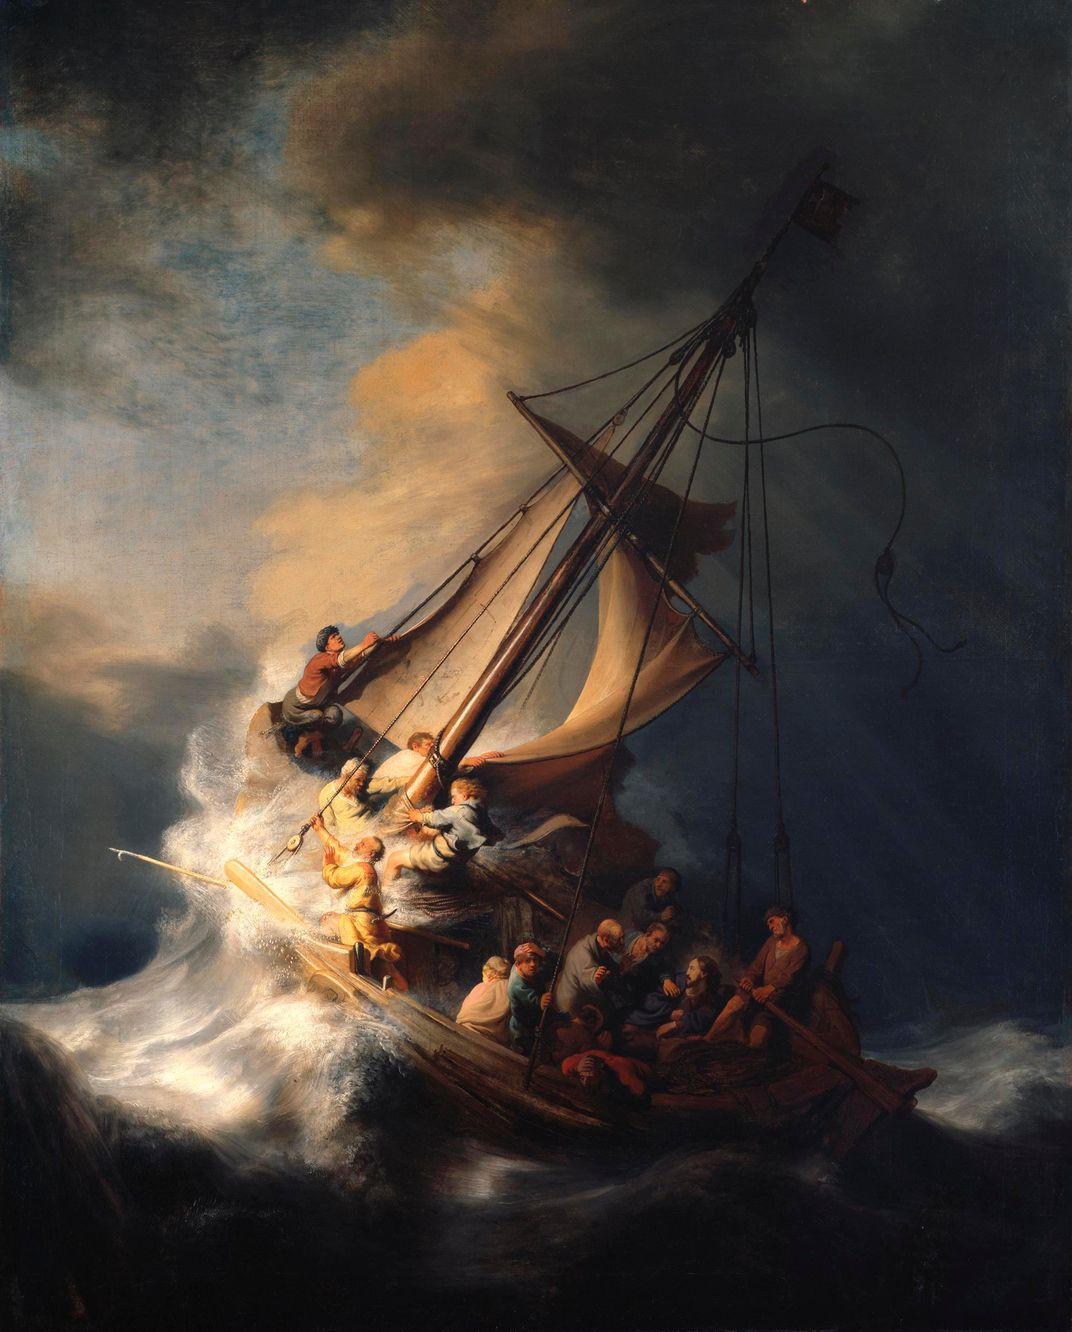 A dramatic view of men, Jesus' disciples, on a ship in tossing, rough waters, with bright light emerging from the left of the composition